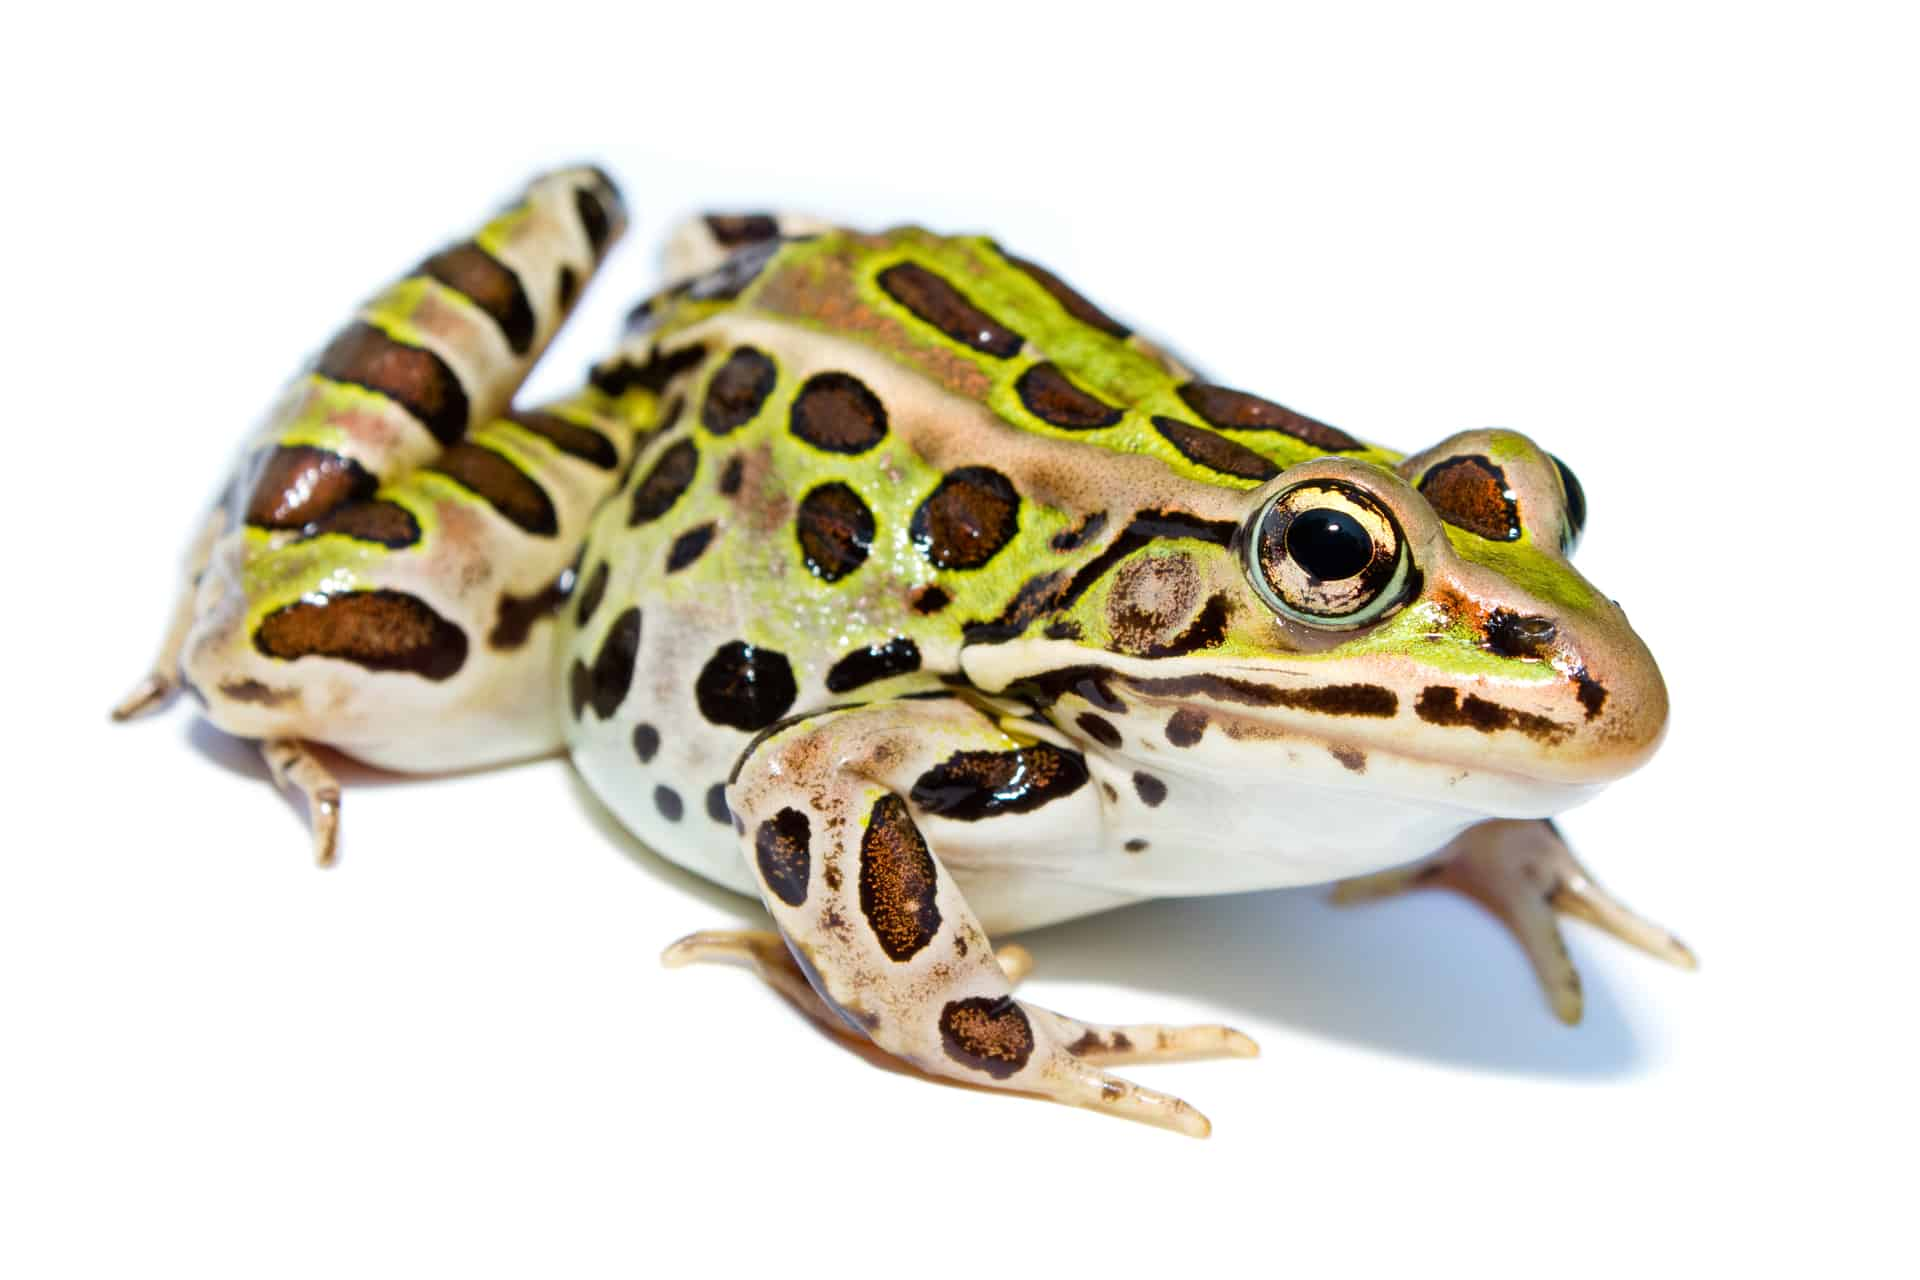 Northern leopard frog eating - photo#26